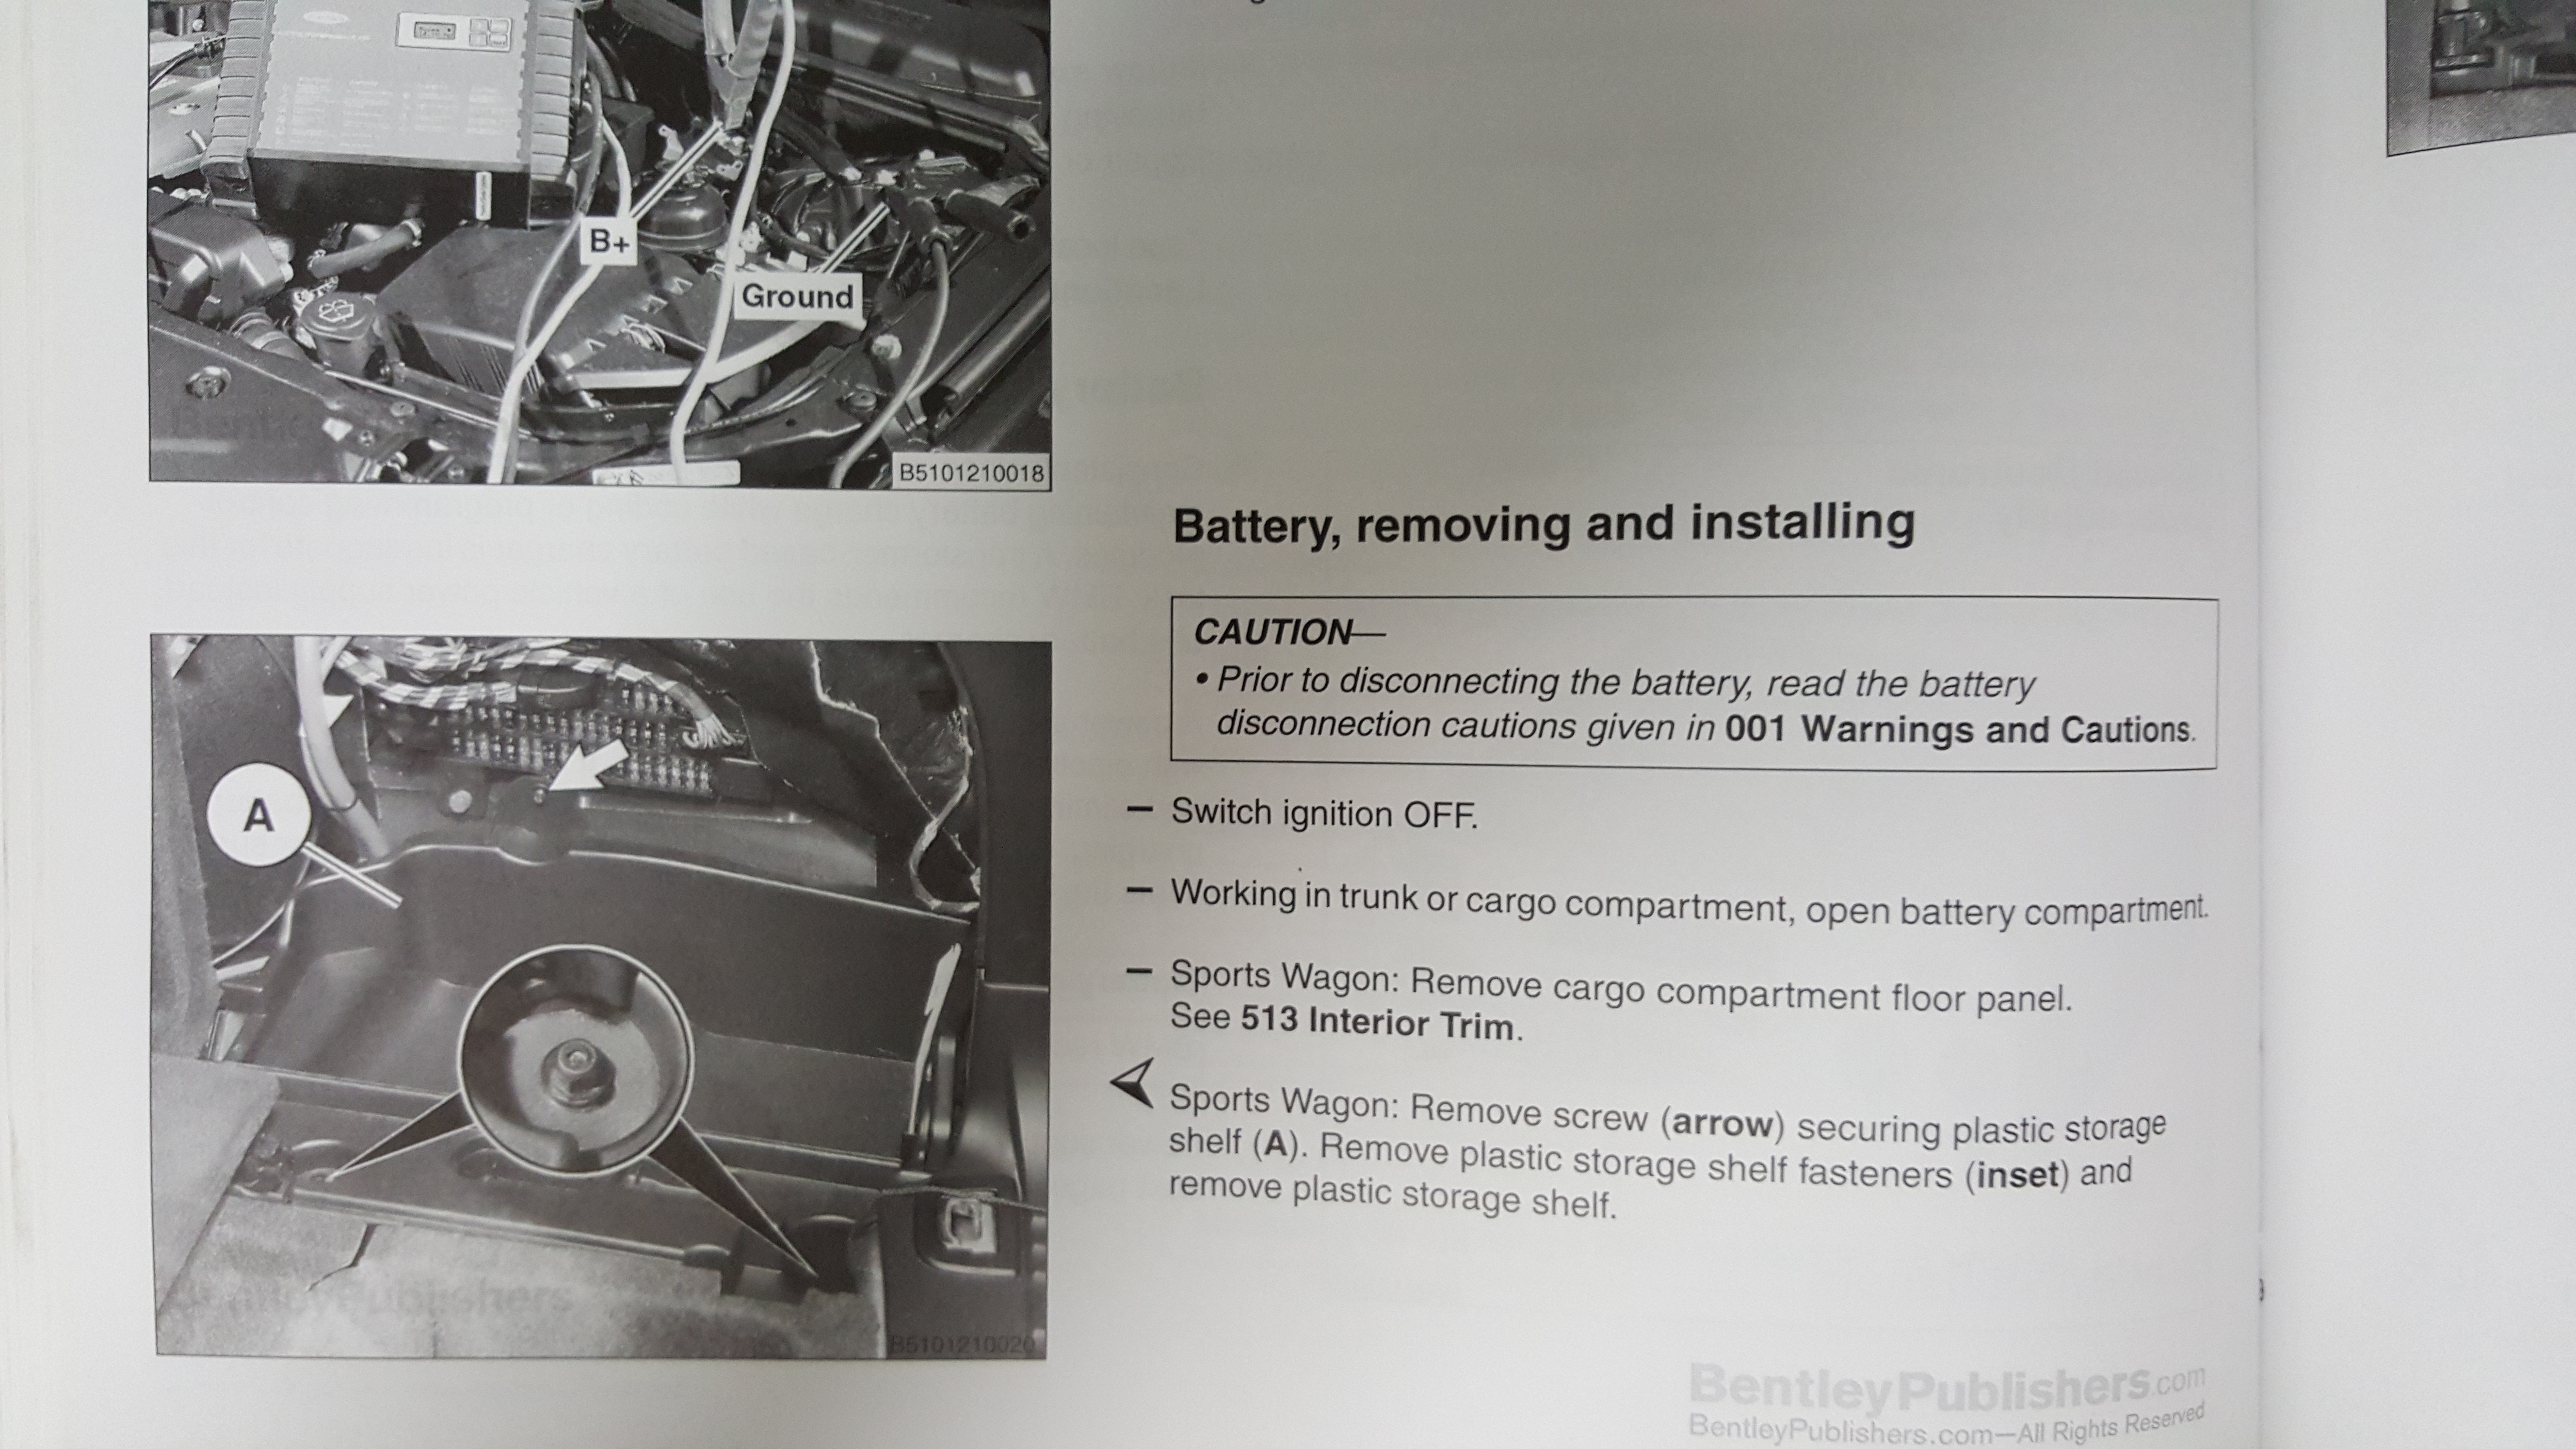 2006 Bmw 325i Battery Diagram Together With 2006 Bmw 325i Water Pump